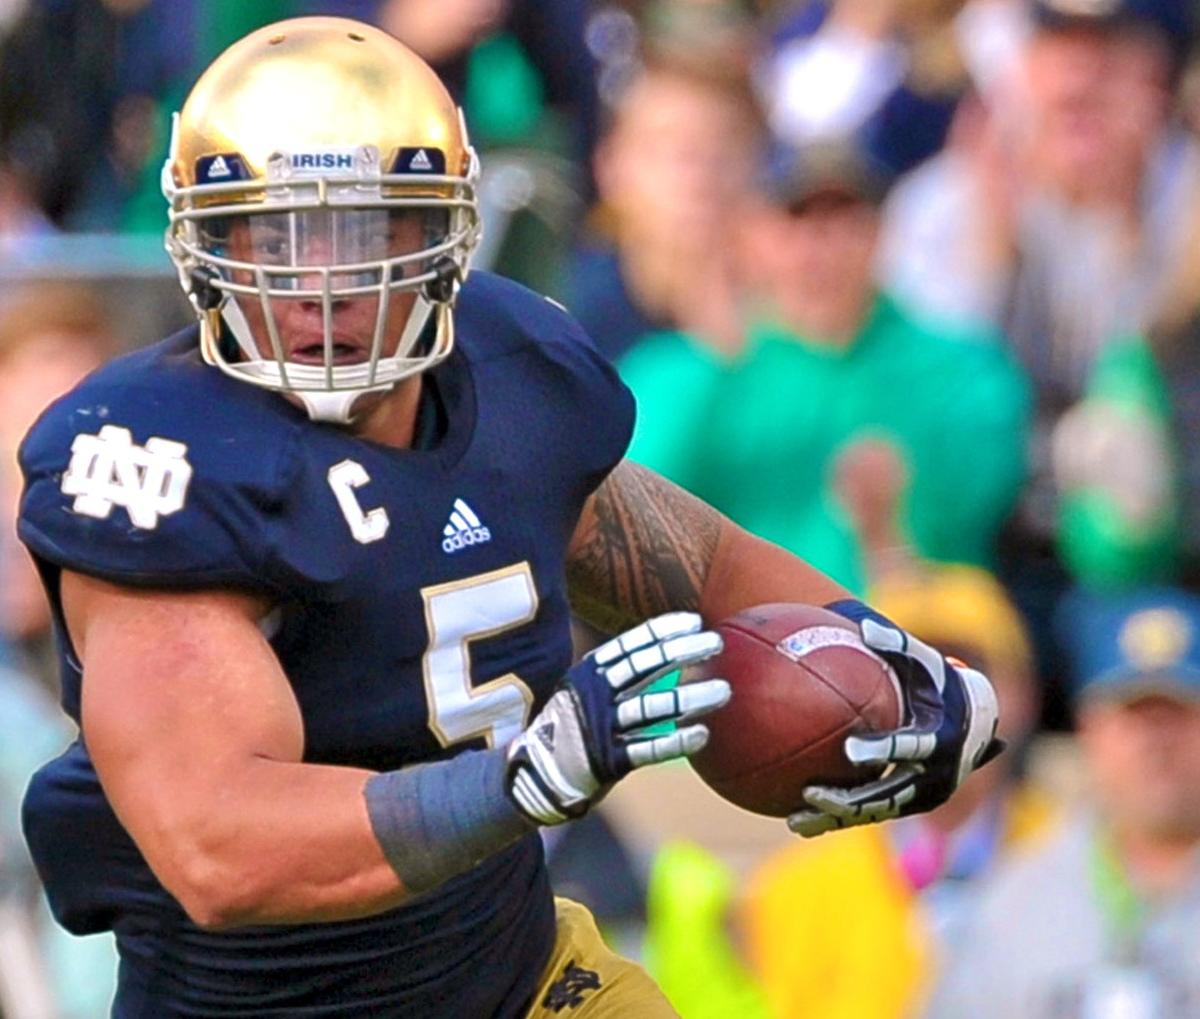 San Diego Chargers Draft: Manti Te'o Drafted By San Diego Chargers In 2nd Round